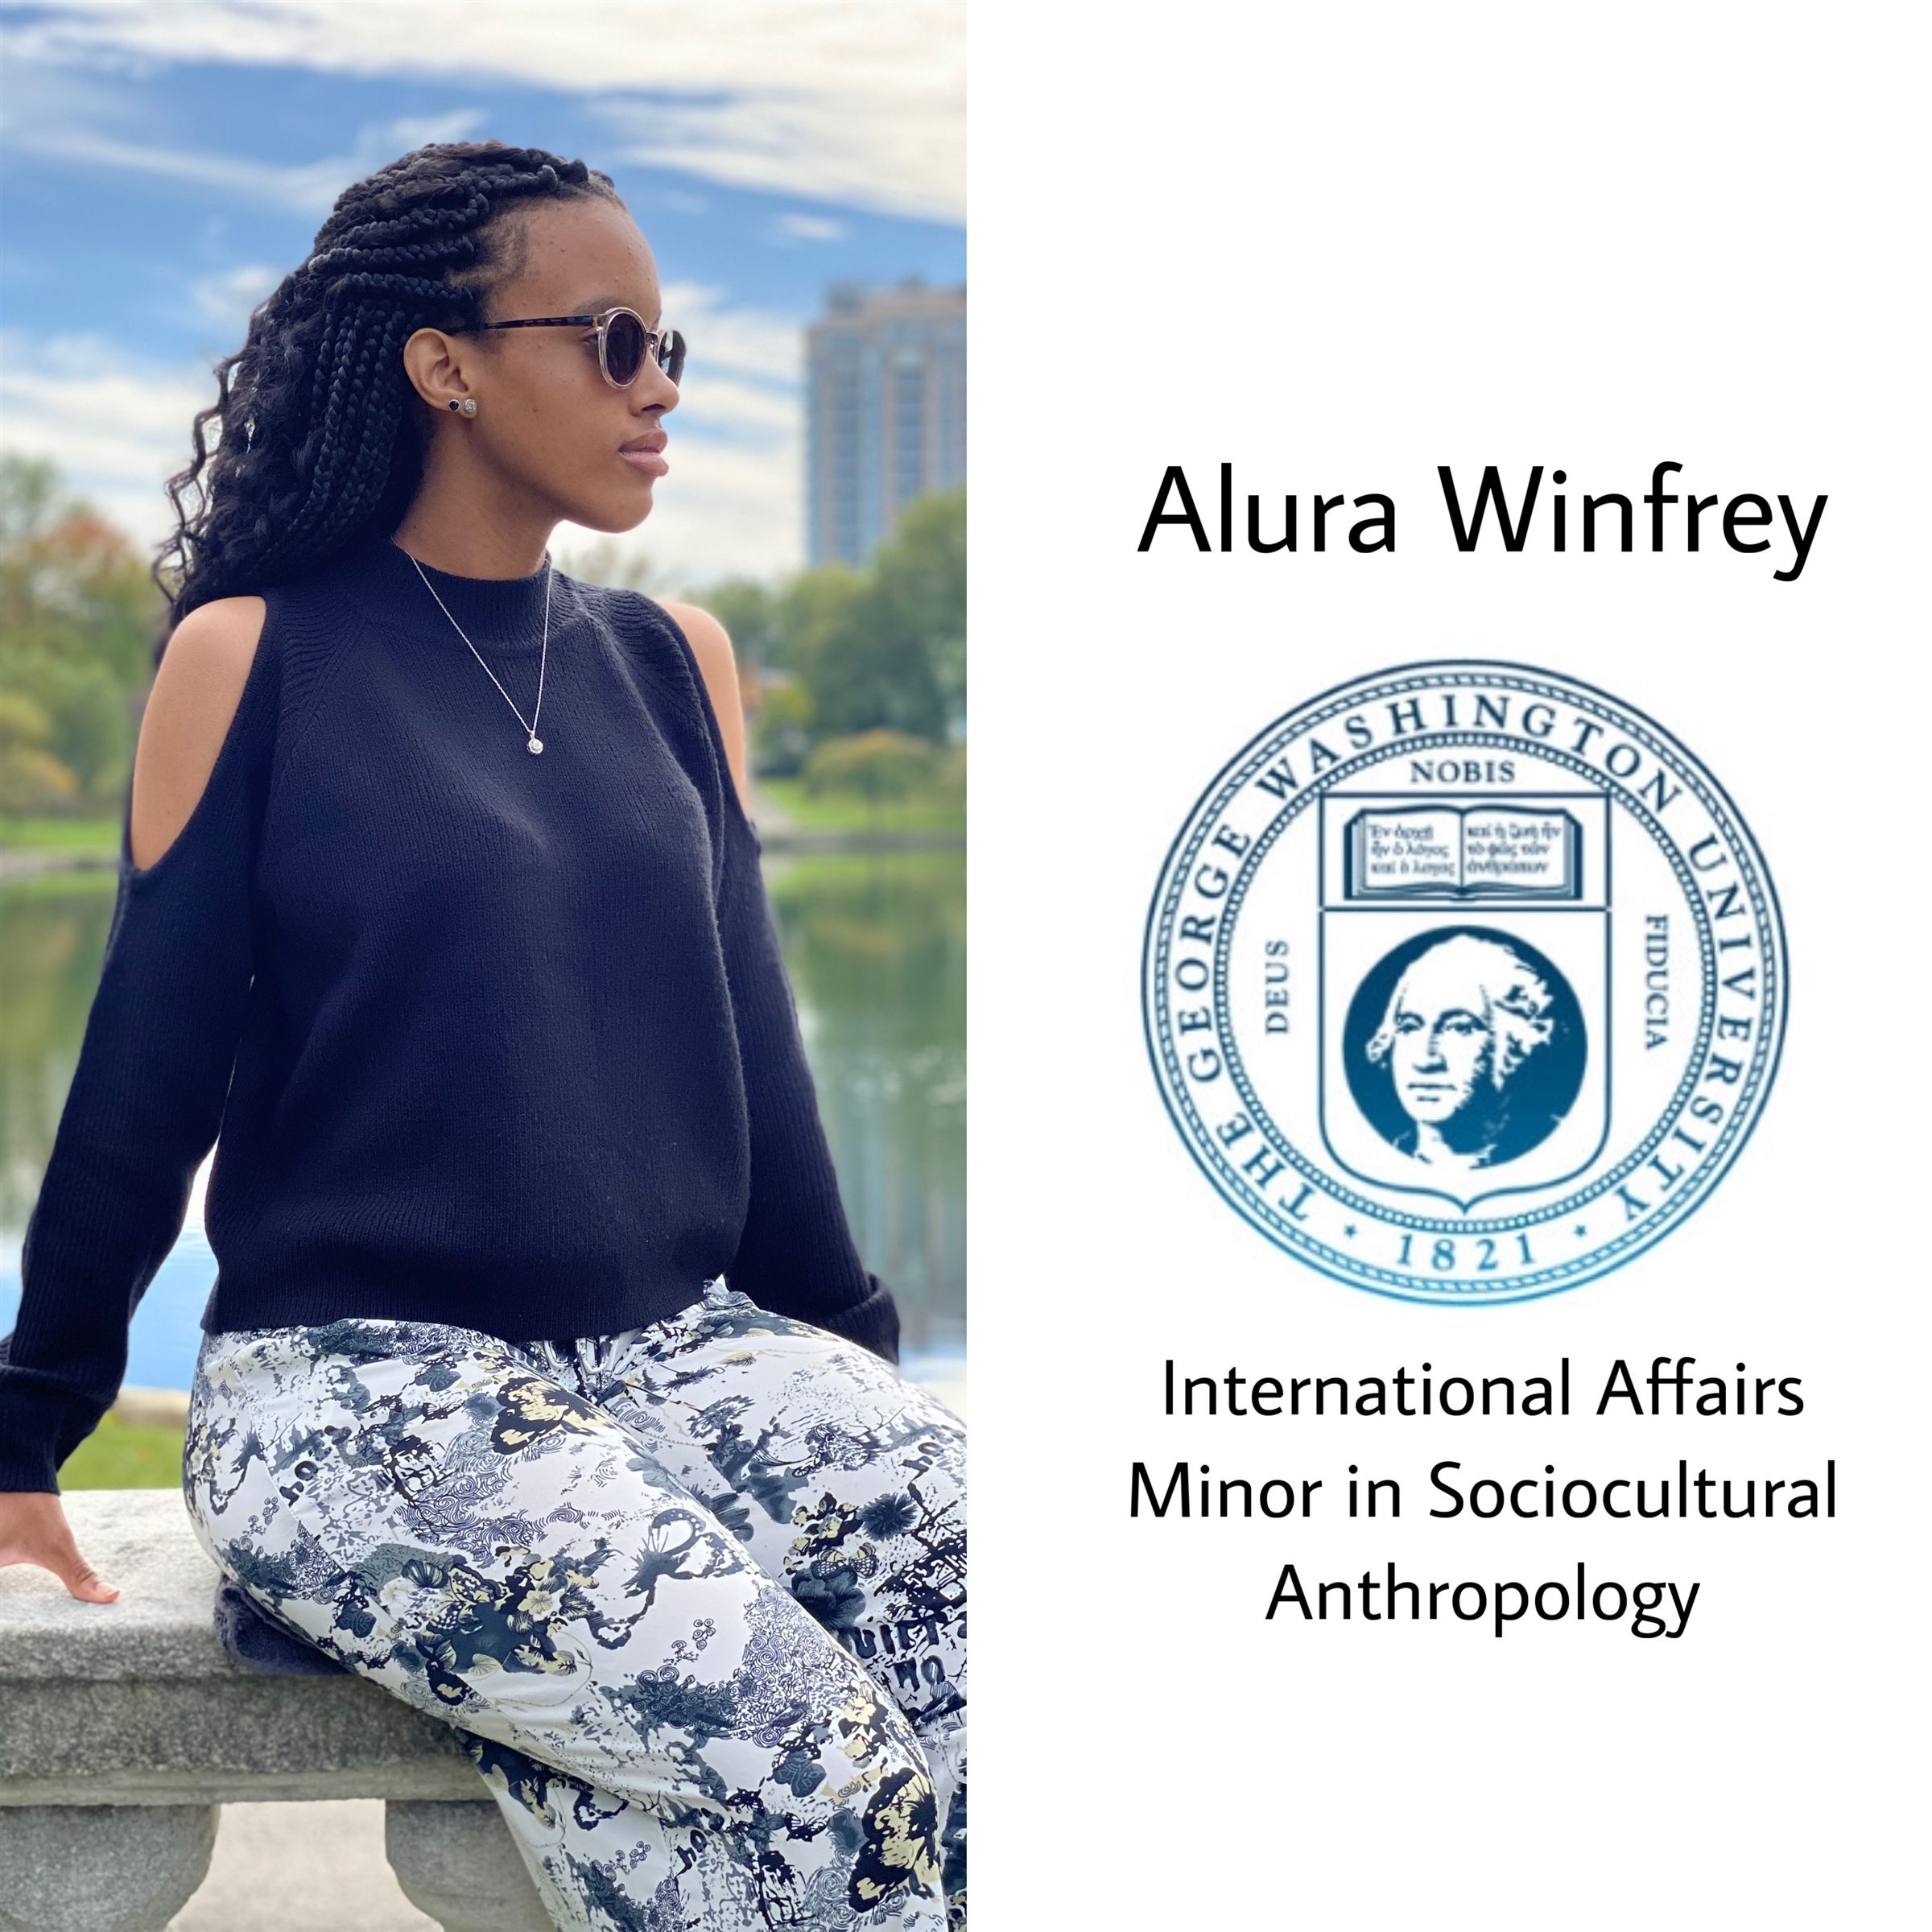 Congratulations Alura!!! She will be attending The George Washington University next fall majoring in International Affairs with a minor in Sociocultural Anthropology